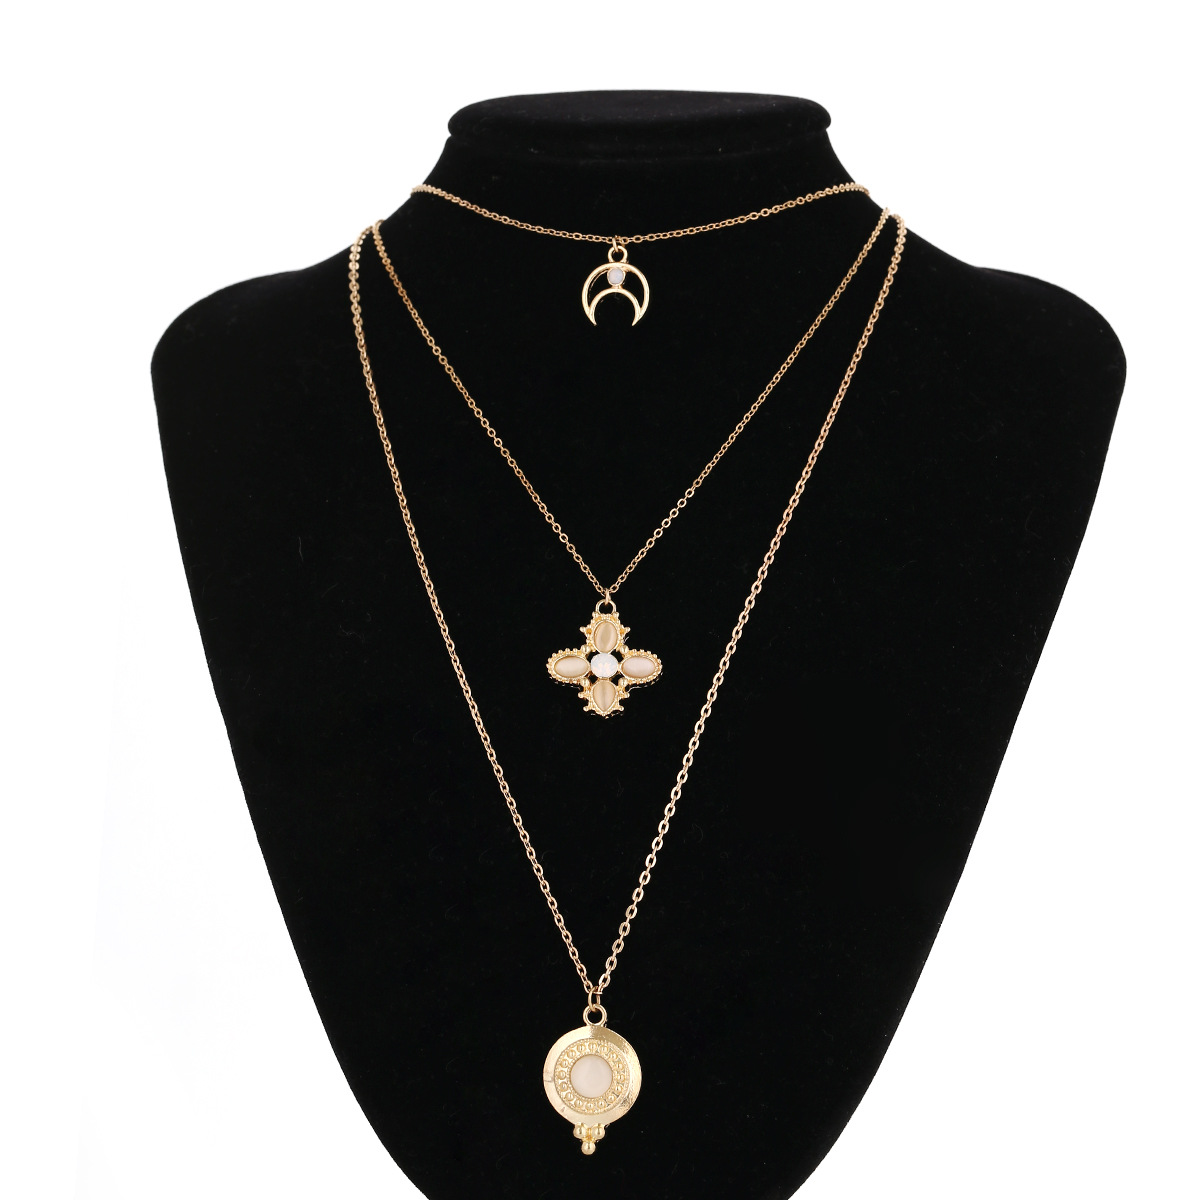 Alloy Fashion Geometric necklace(Golden) NHXR2262-Golden